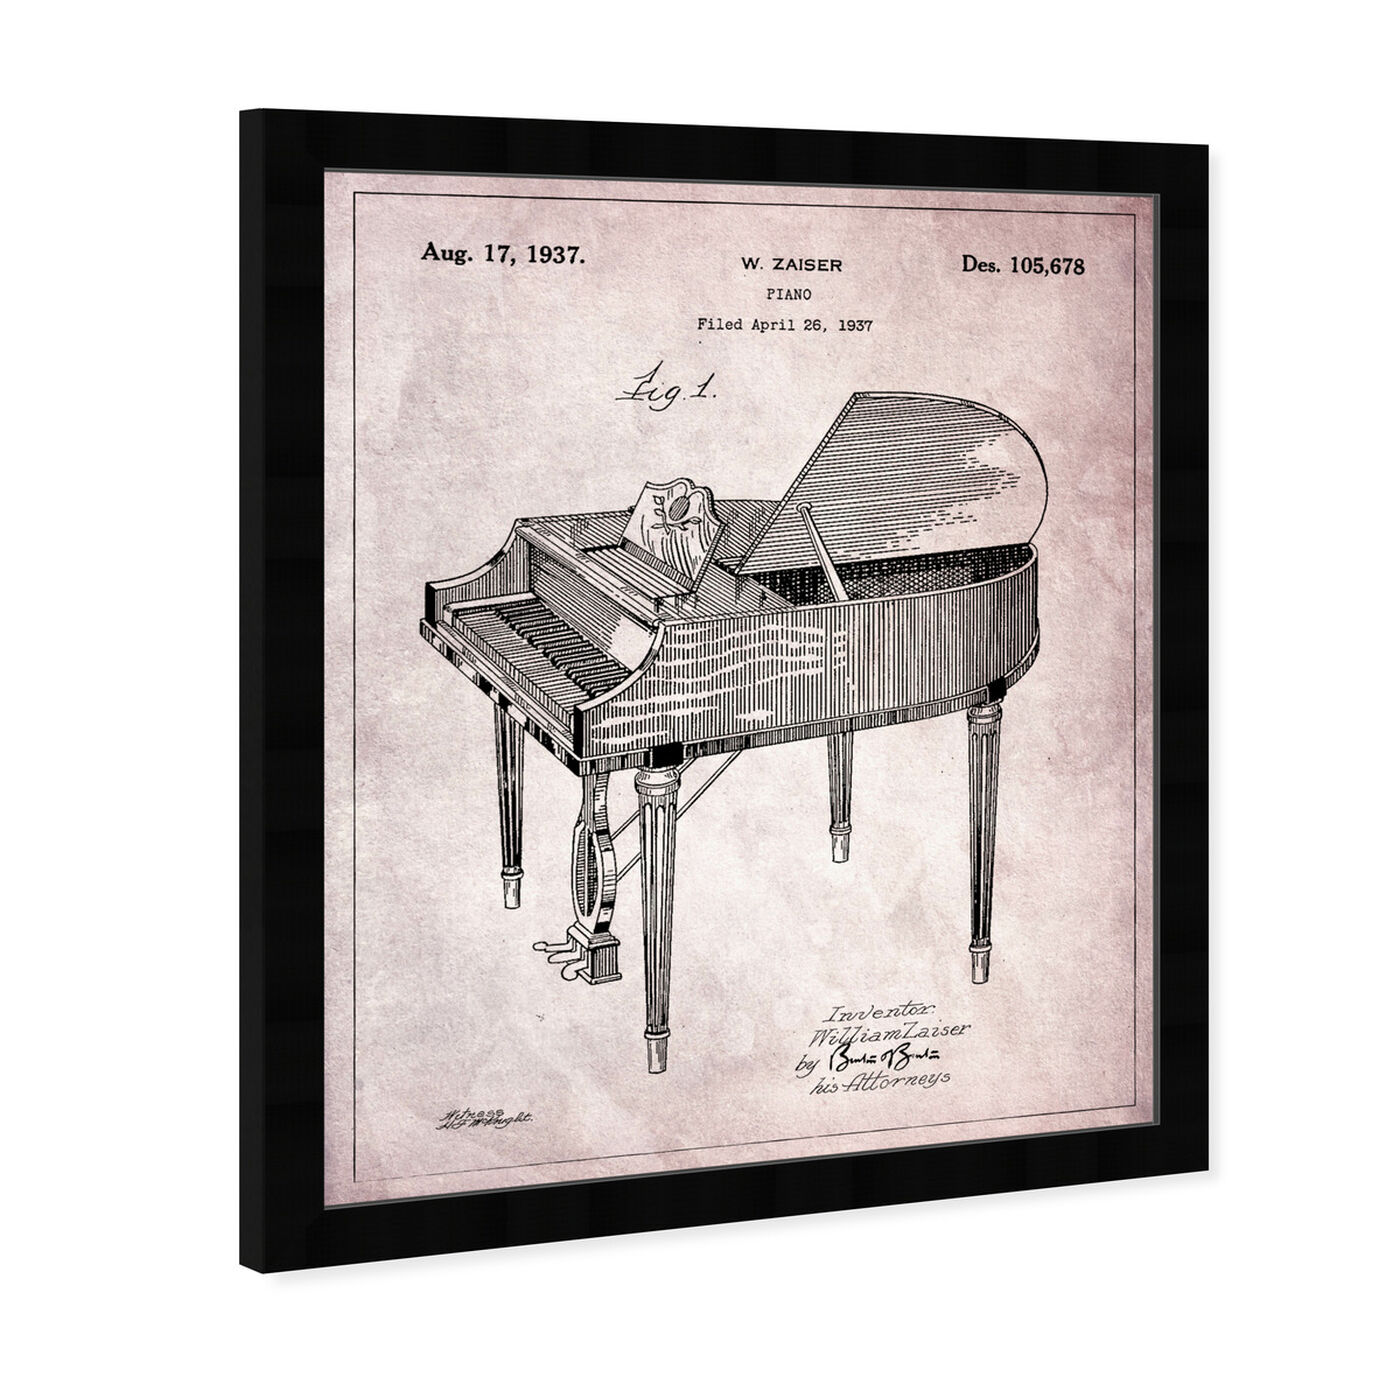 Angled view of Piano 1937 featuring music and dance and music instruments art.